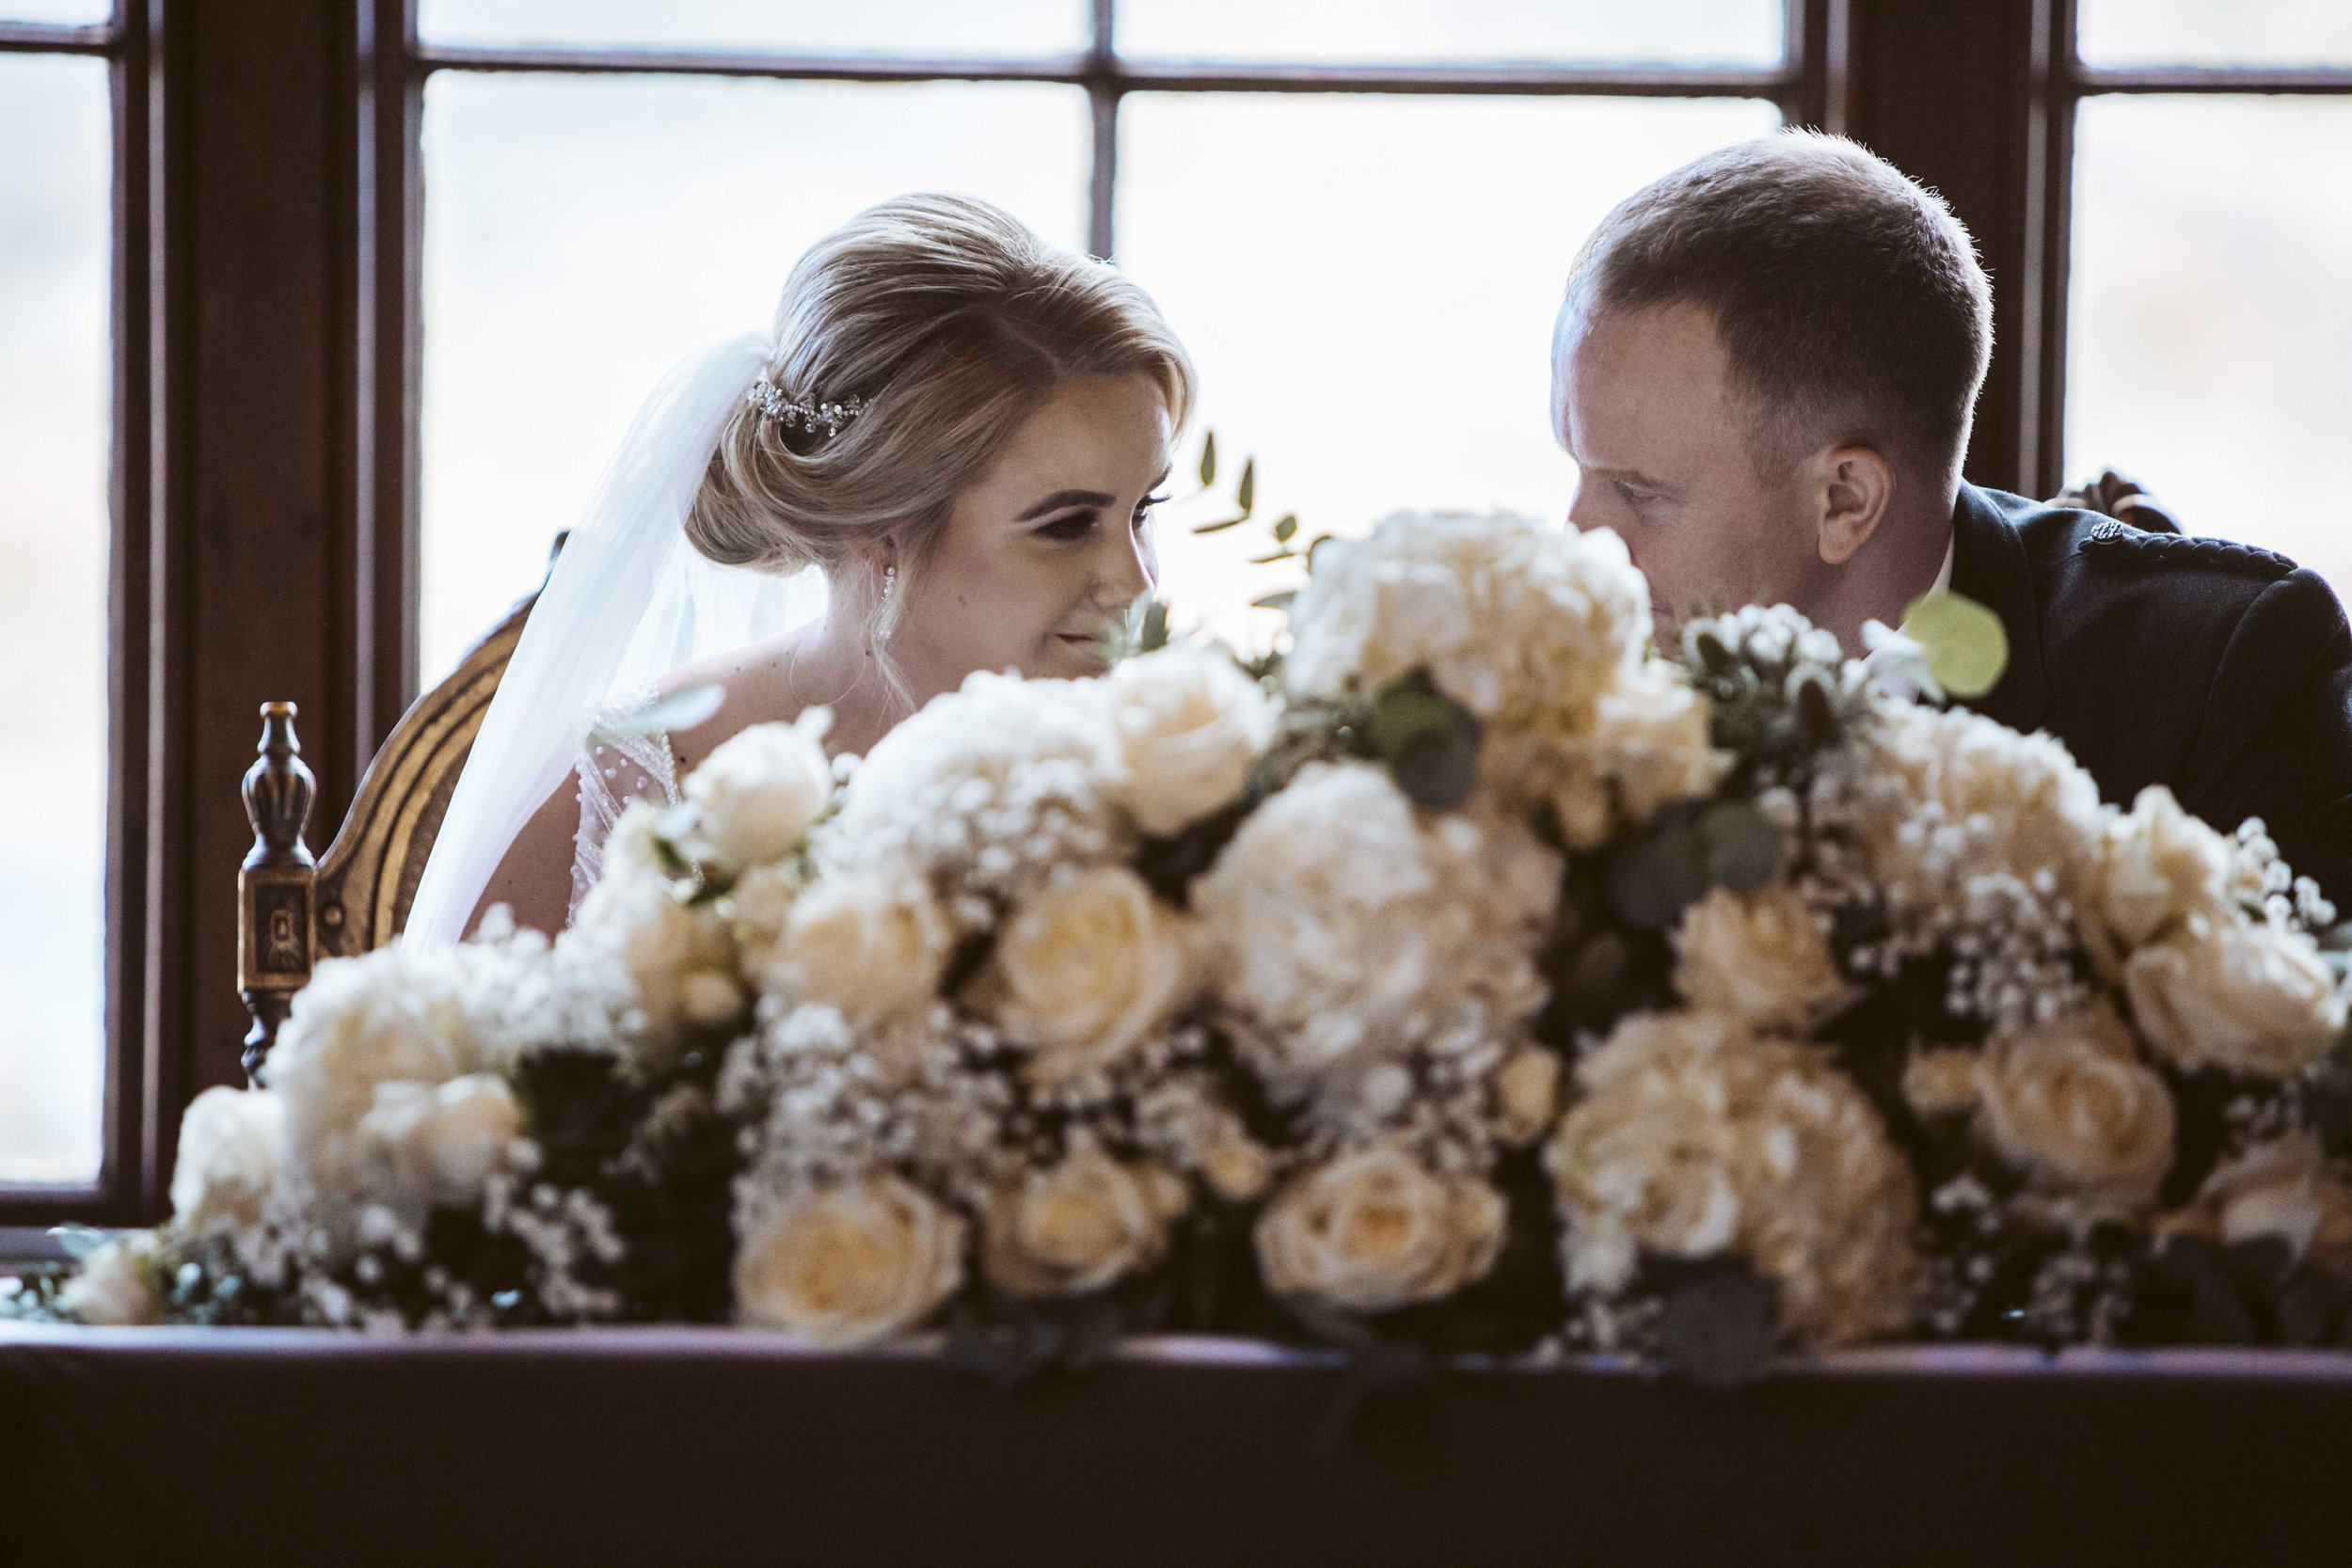 Mar Hall Wedding 2018, Haminsh & Emma McEwan 32.JPG